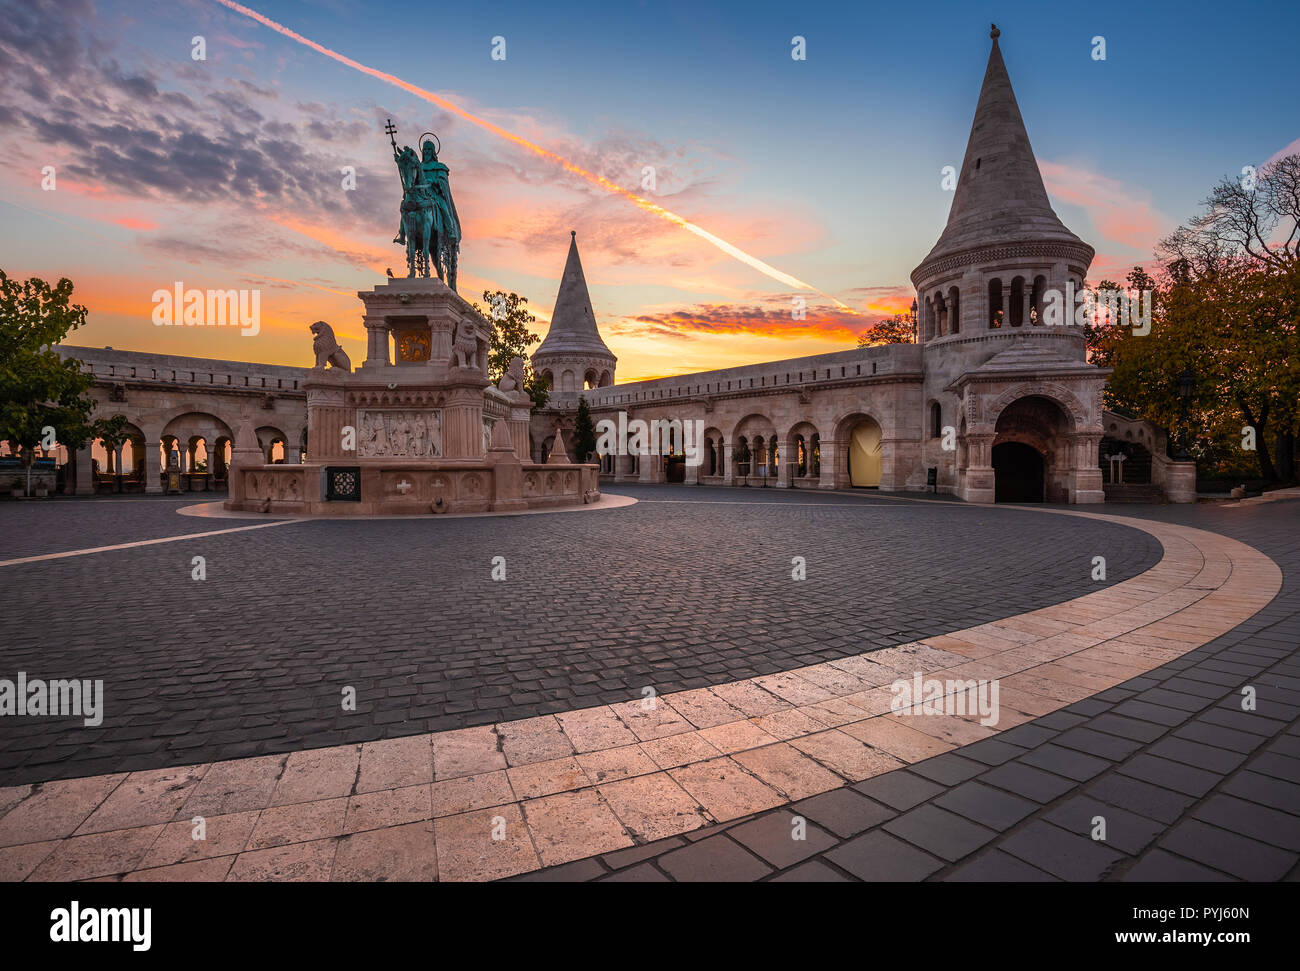 Budapest, Hungary - Autumn sunrise at the Fisherman's Bastion with King Stephen I statue and beautiful sky and clouds - Stock Image